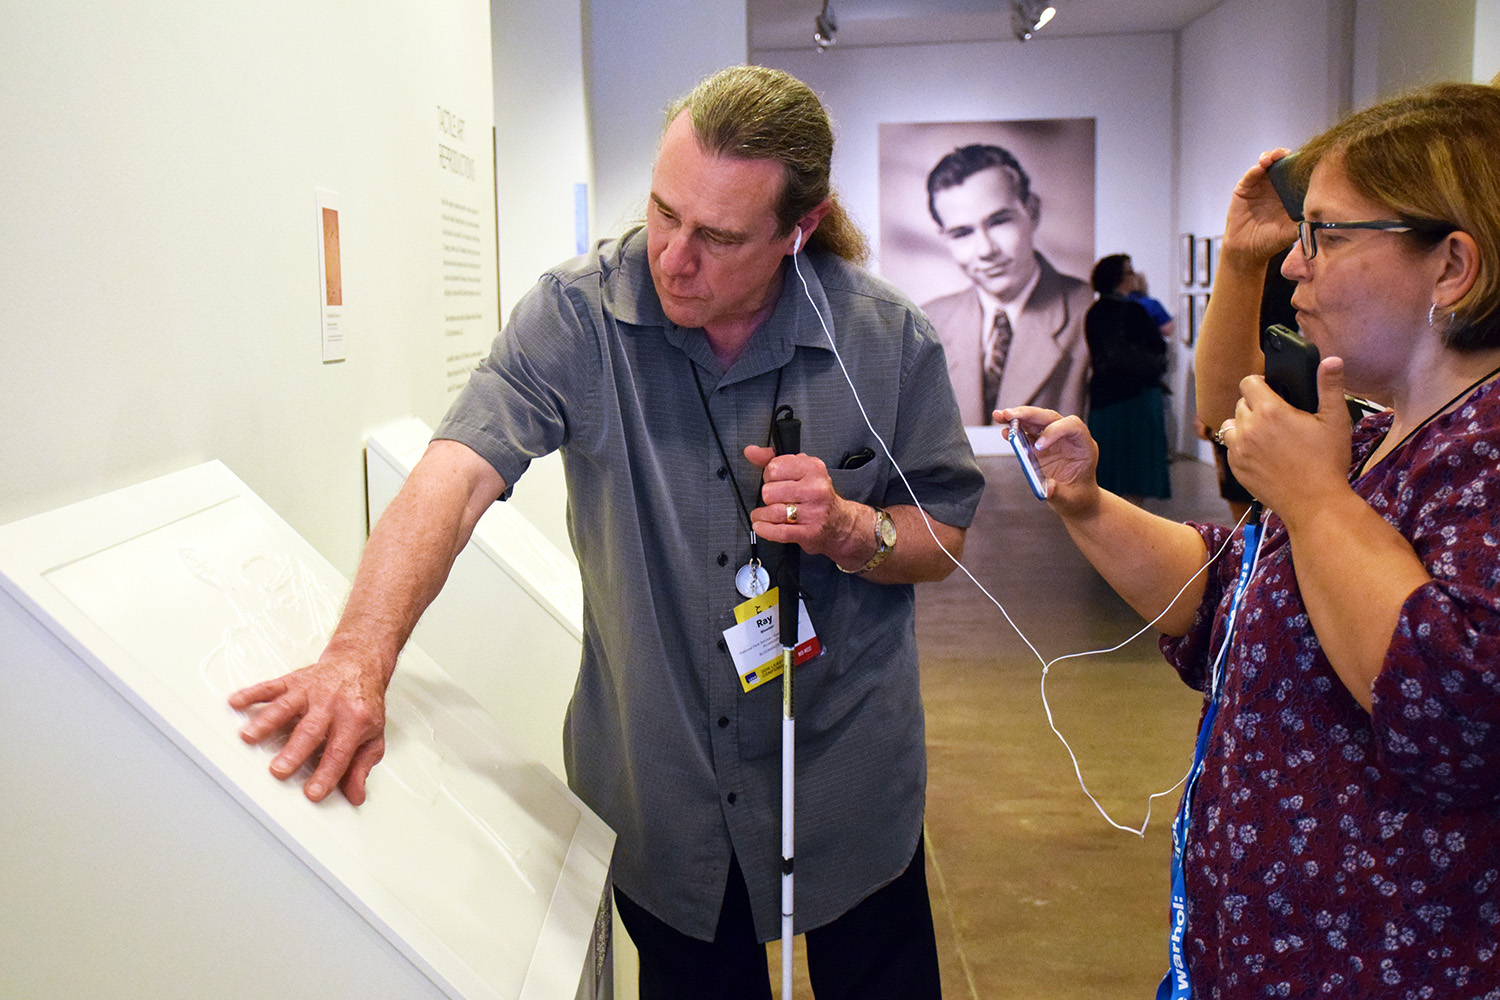 A man and a woman stand in the galleries of the Warhol, sharing an audio guide device. The man on the left holds a white cane in one hand and leans over to touch a white tactile reproduction with his other hand.